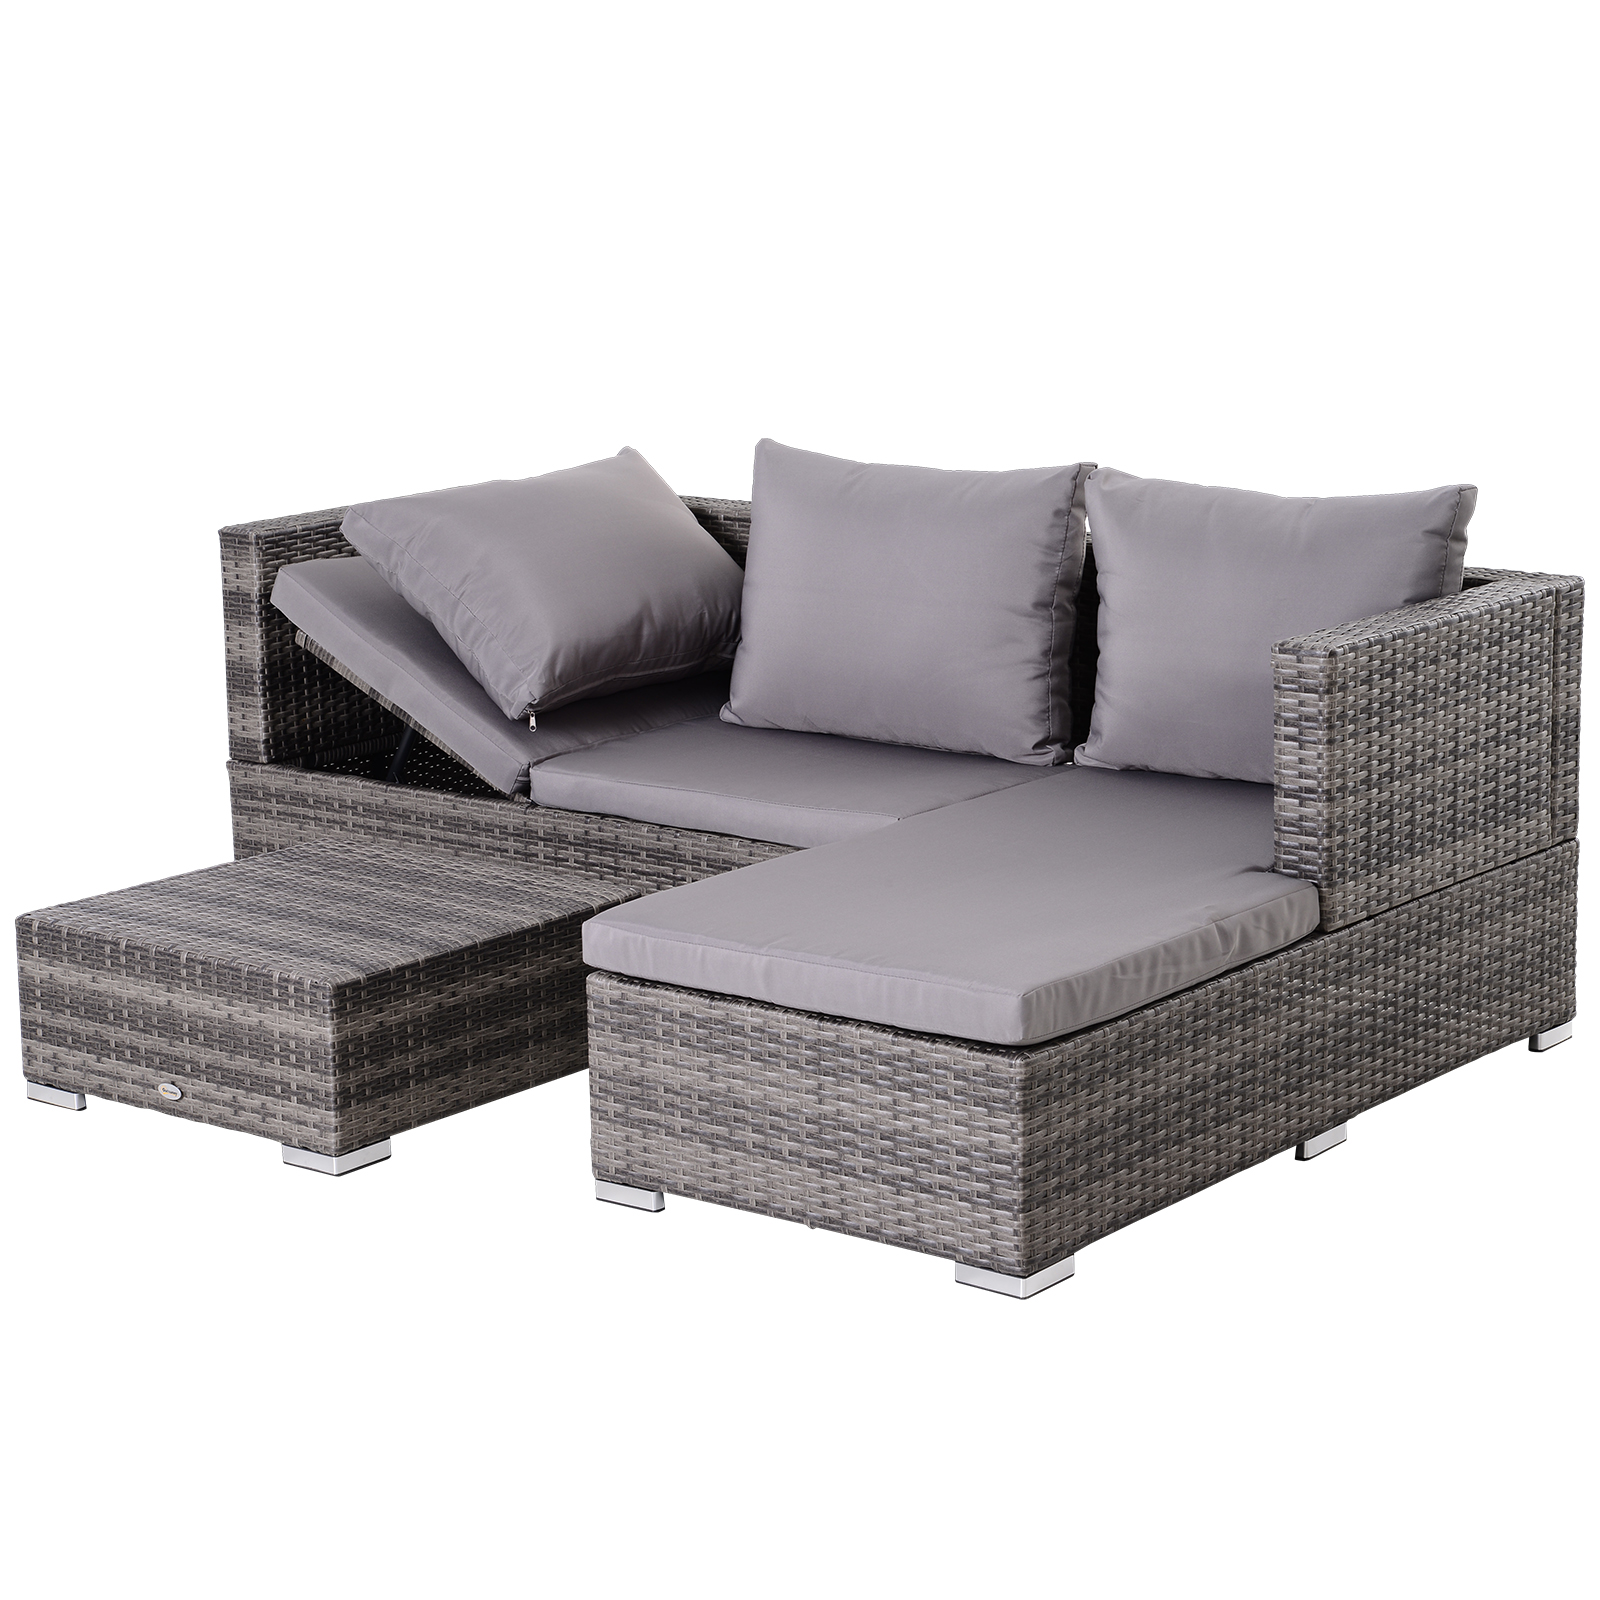 3-Piece-Adjustable-Seat-Rattan-Wicker-Sofa-Set-Sleeping-Couch-Bed-Lounge-Grey miniature 7